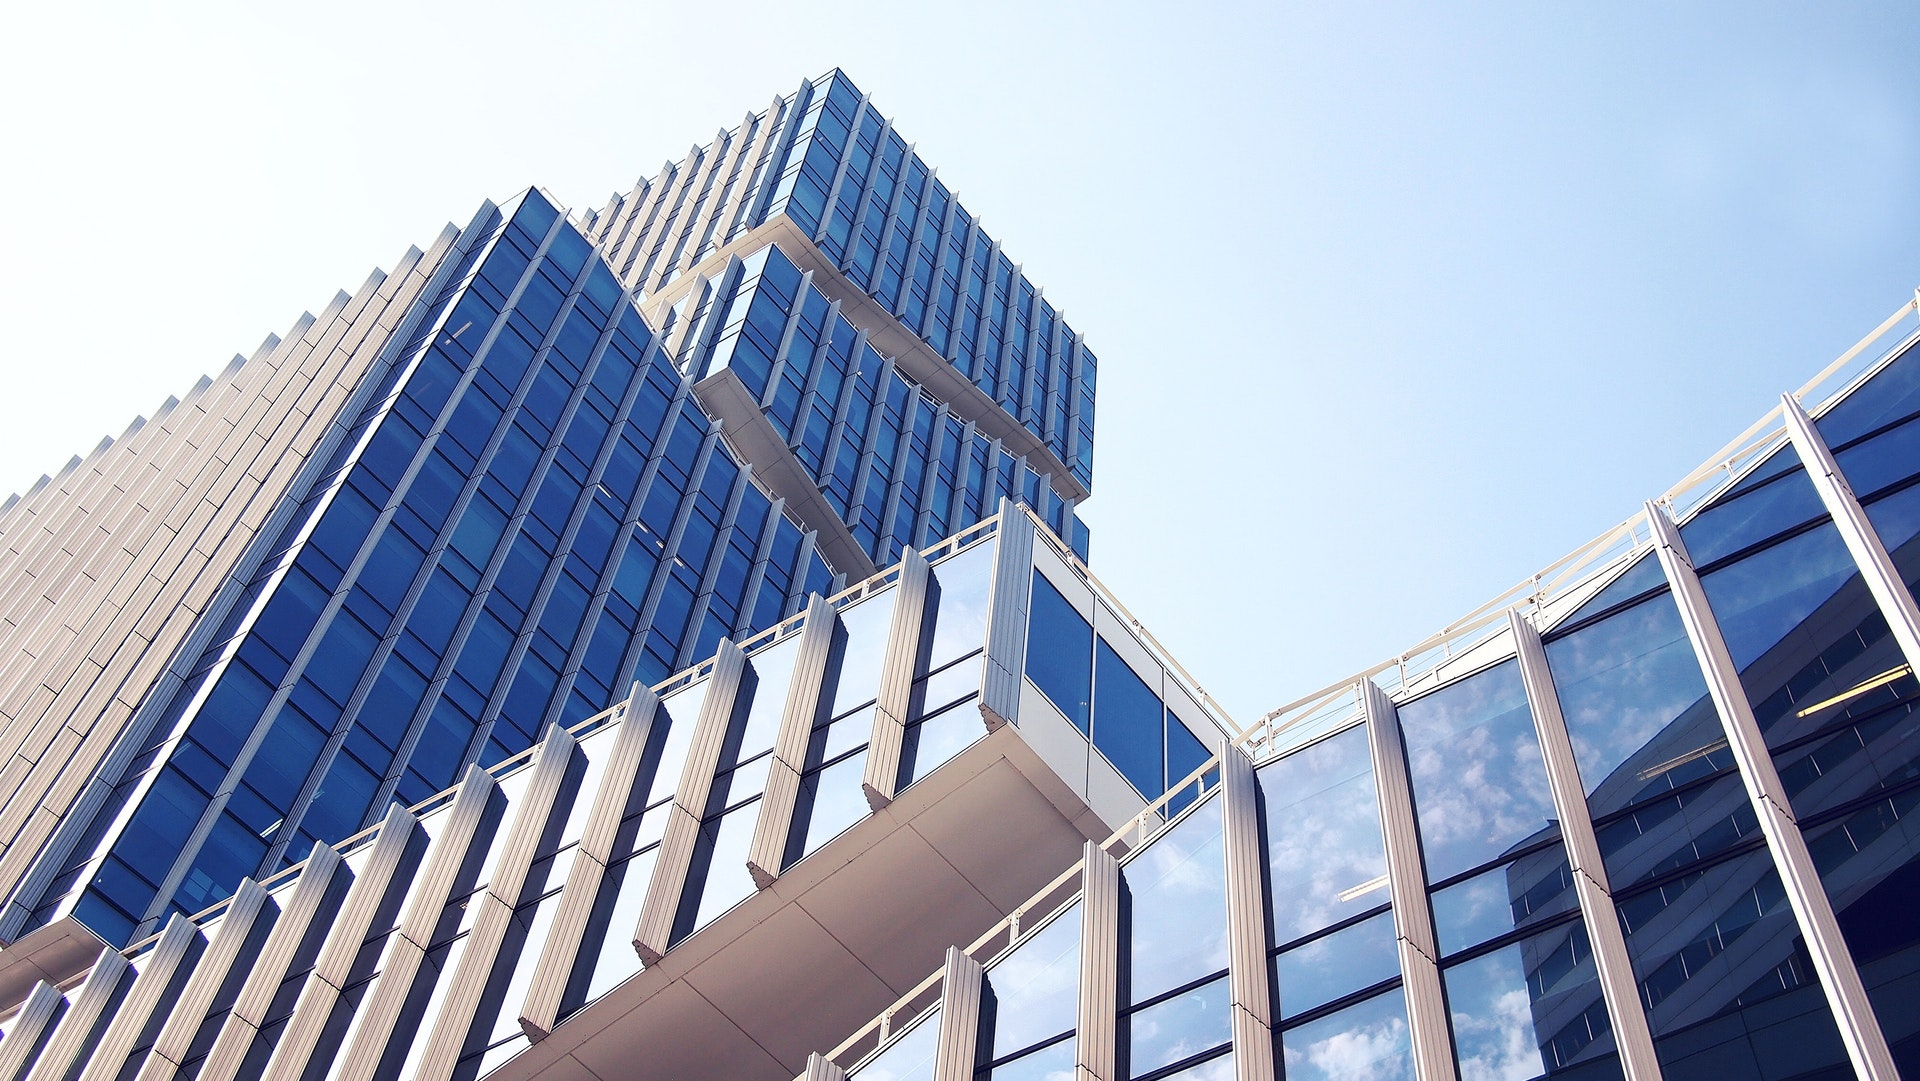 glass-building-162539